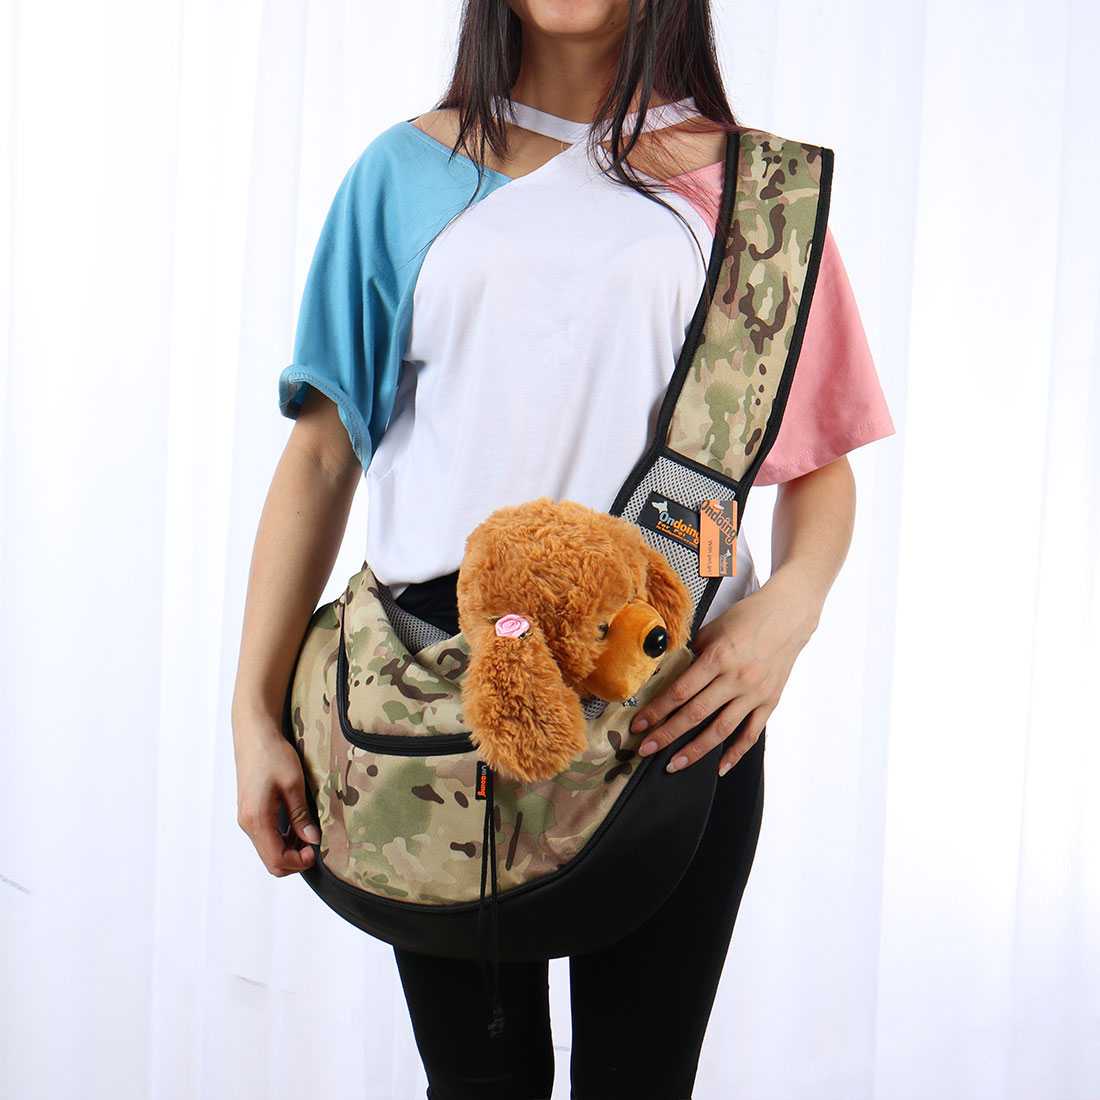 Onding Authorized Pet Dog Carrier Single Shoulder Backpack Army Green Camo - image 3 of 8